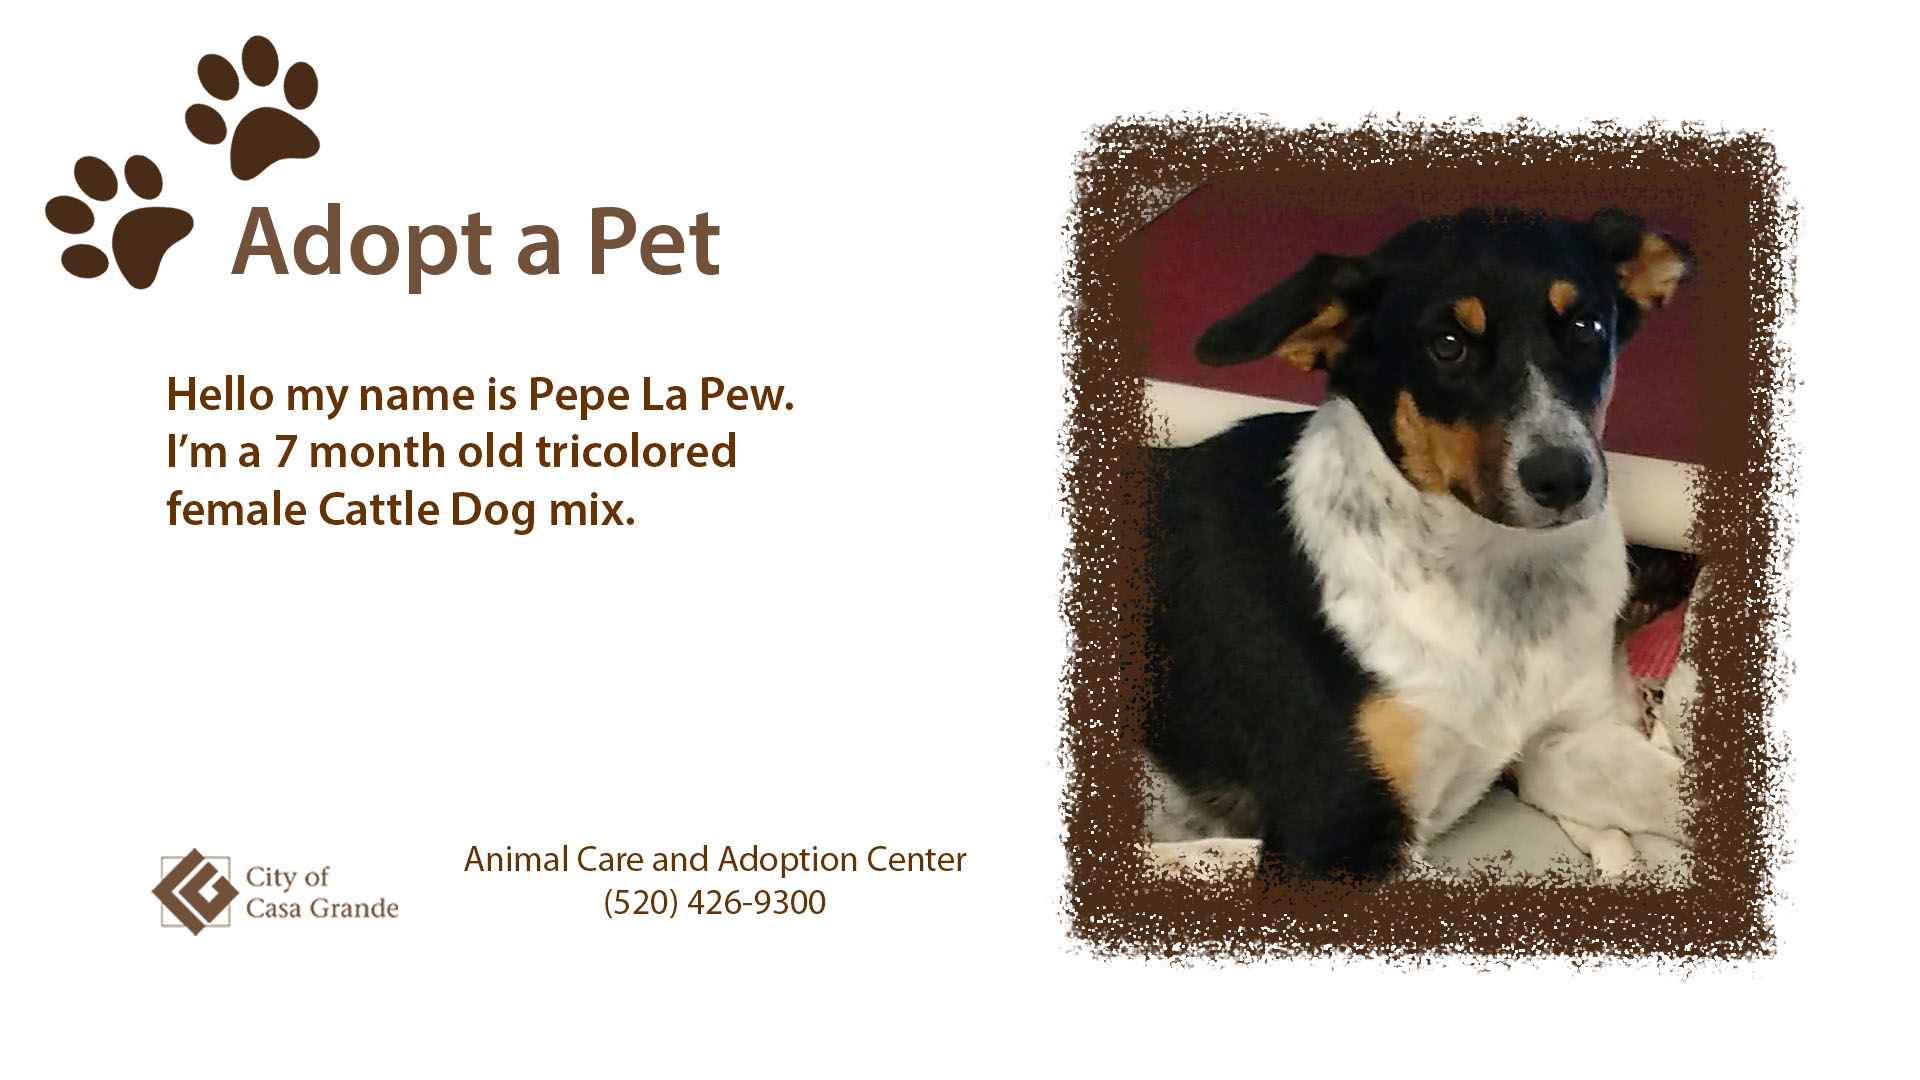 Seven month old tricolored female Cattle Dog mix named Pepe La Pew